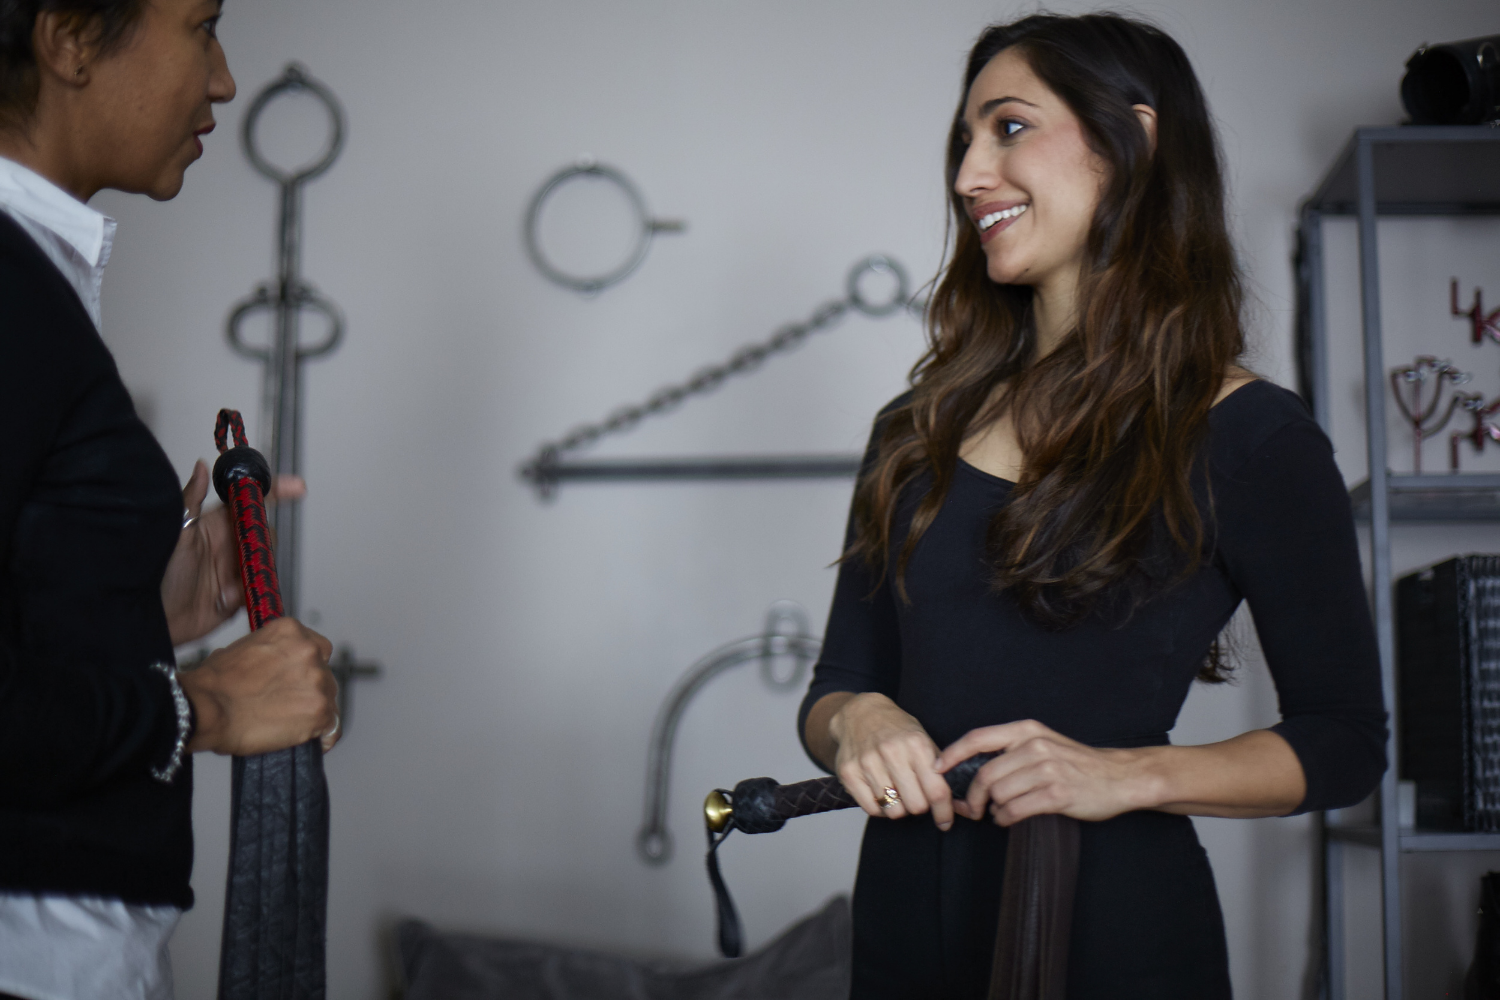 Olivia Troy, left, explains whip technique to an actor at the Kink On Set studio.